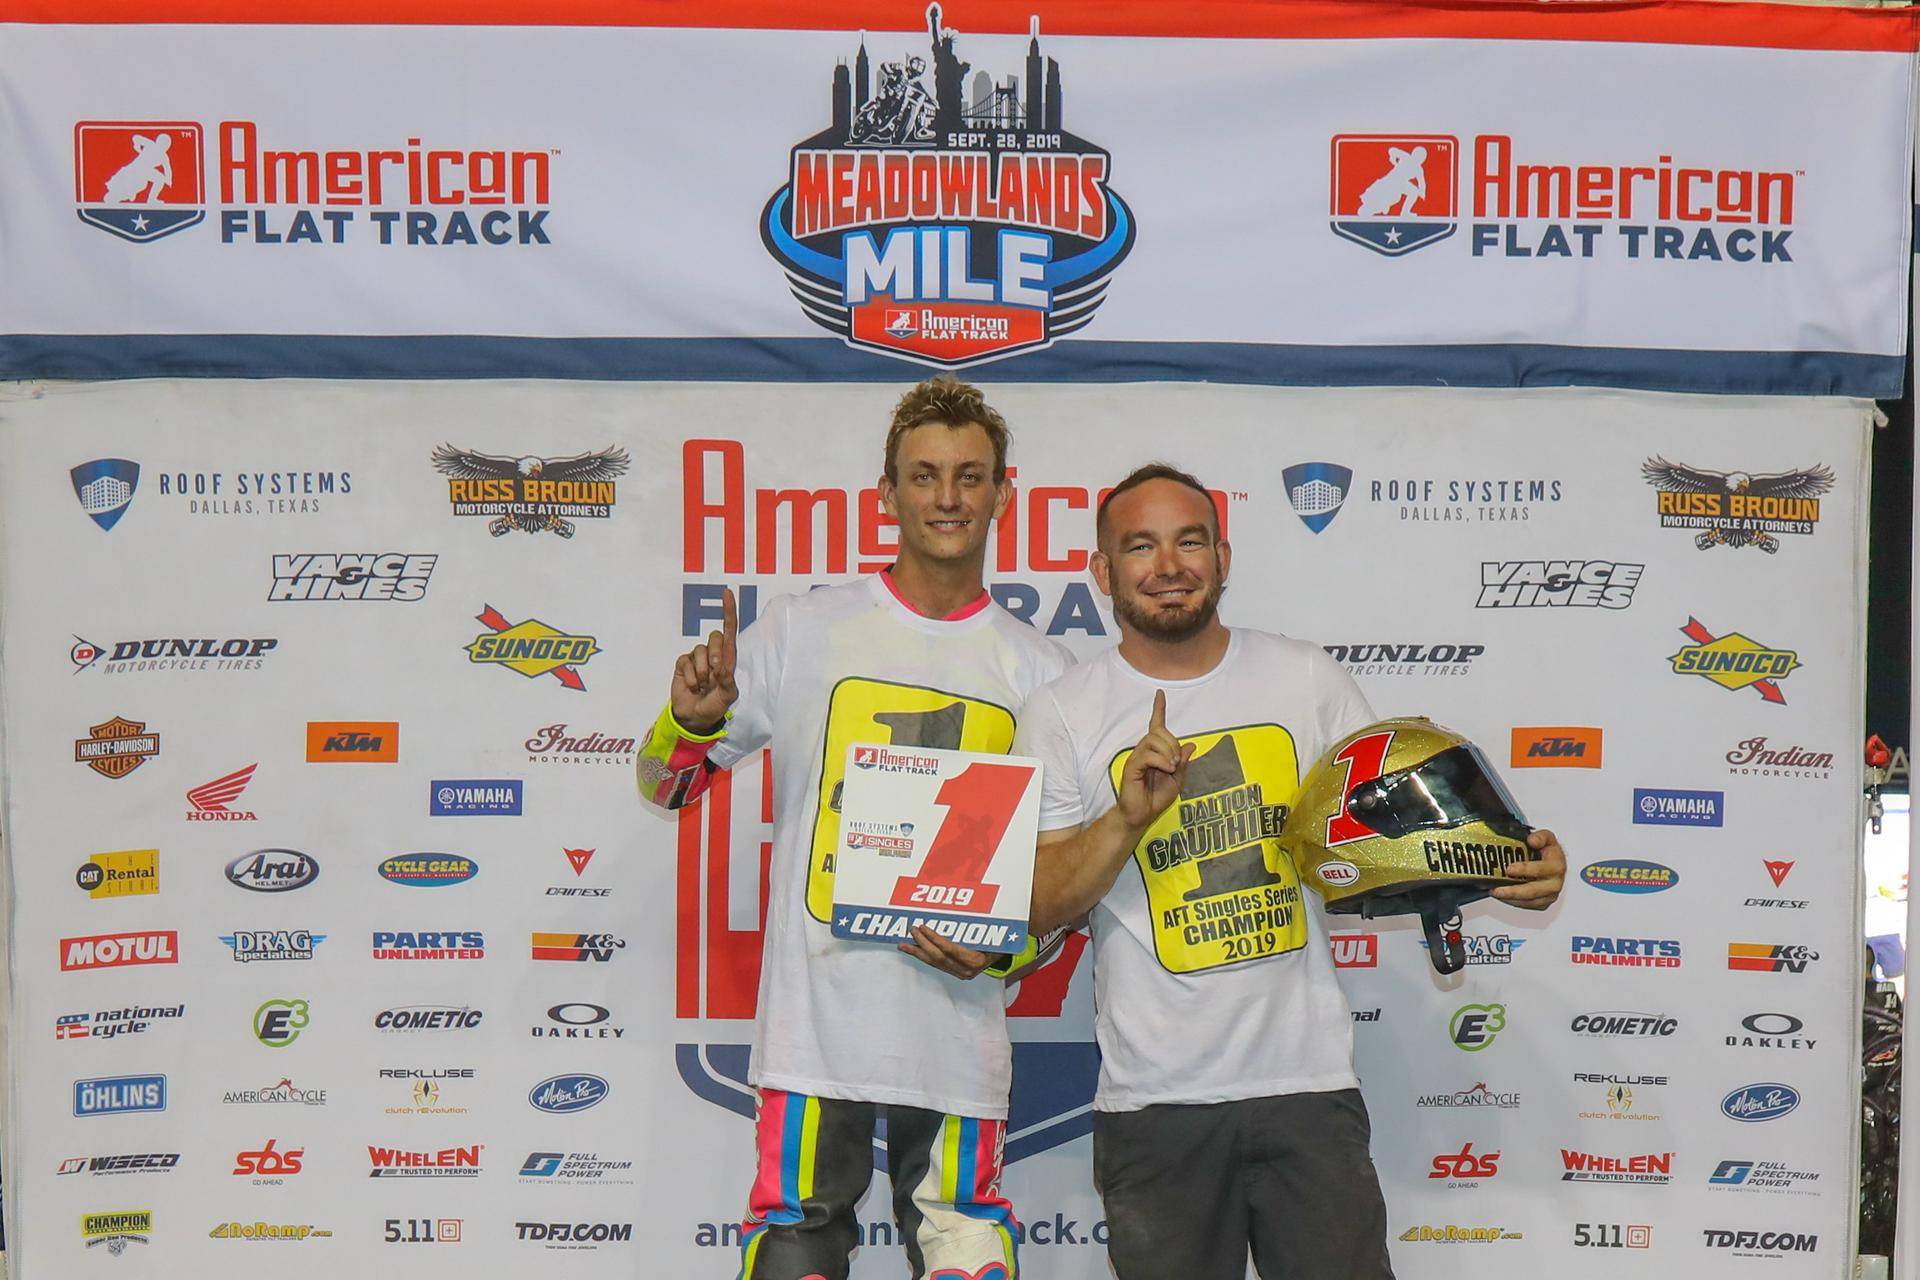 Meadowlands Mile - Gauthier PR